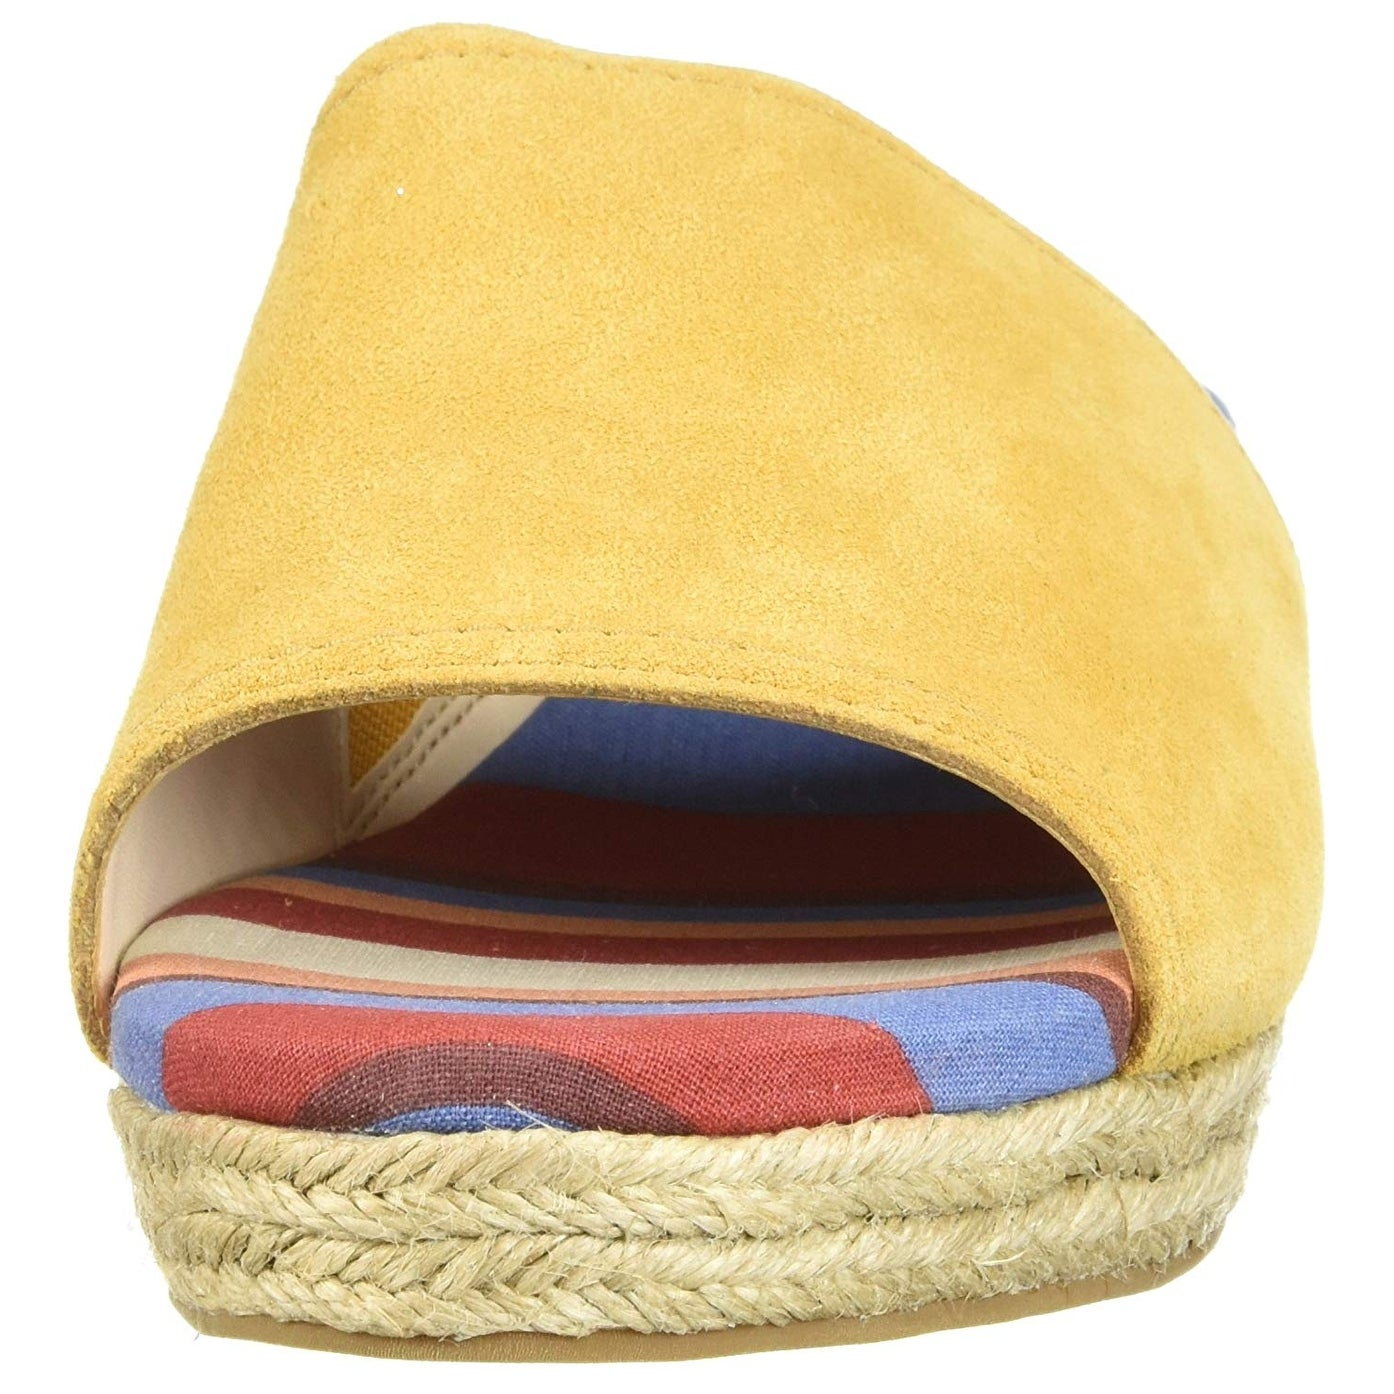 a4fdf2cf728 Shop Cole Haan Women s Giselle MID Espadrille Sandal II Wedge - On Sale -  Free Shipping On Orders Over  45 - Overstock.com - 25462693